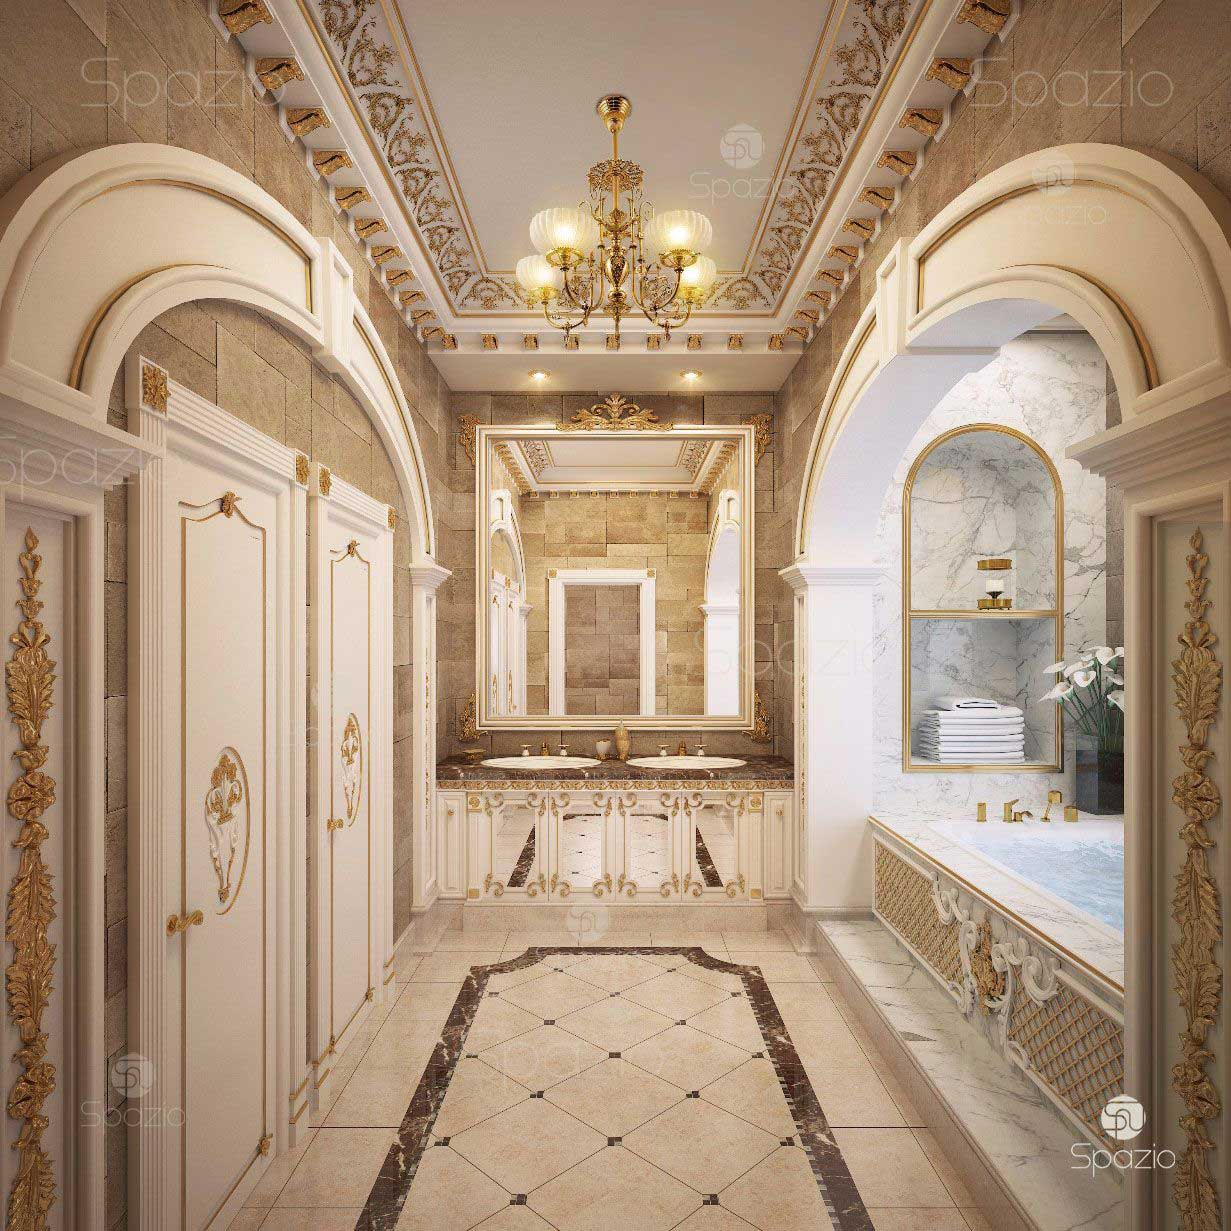 The main bathroom made by us in a luxurious residence in Abu Dhabi. Order an unrivaled interior for your residence.